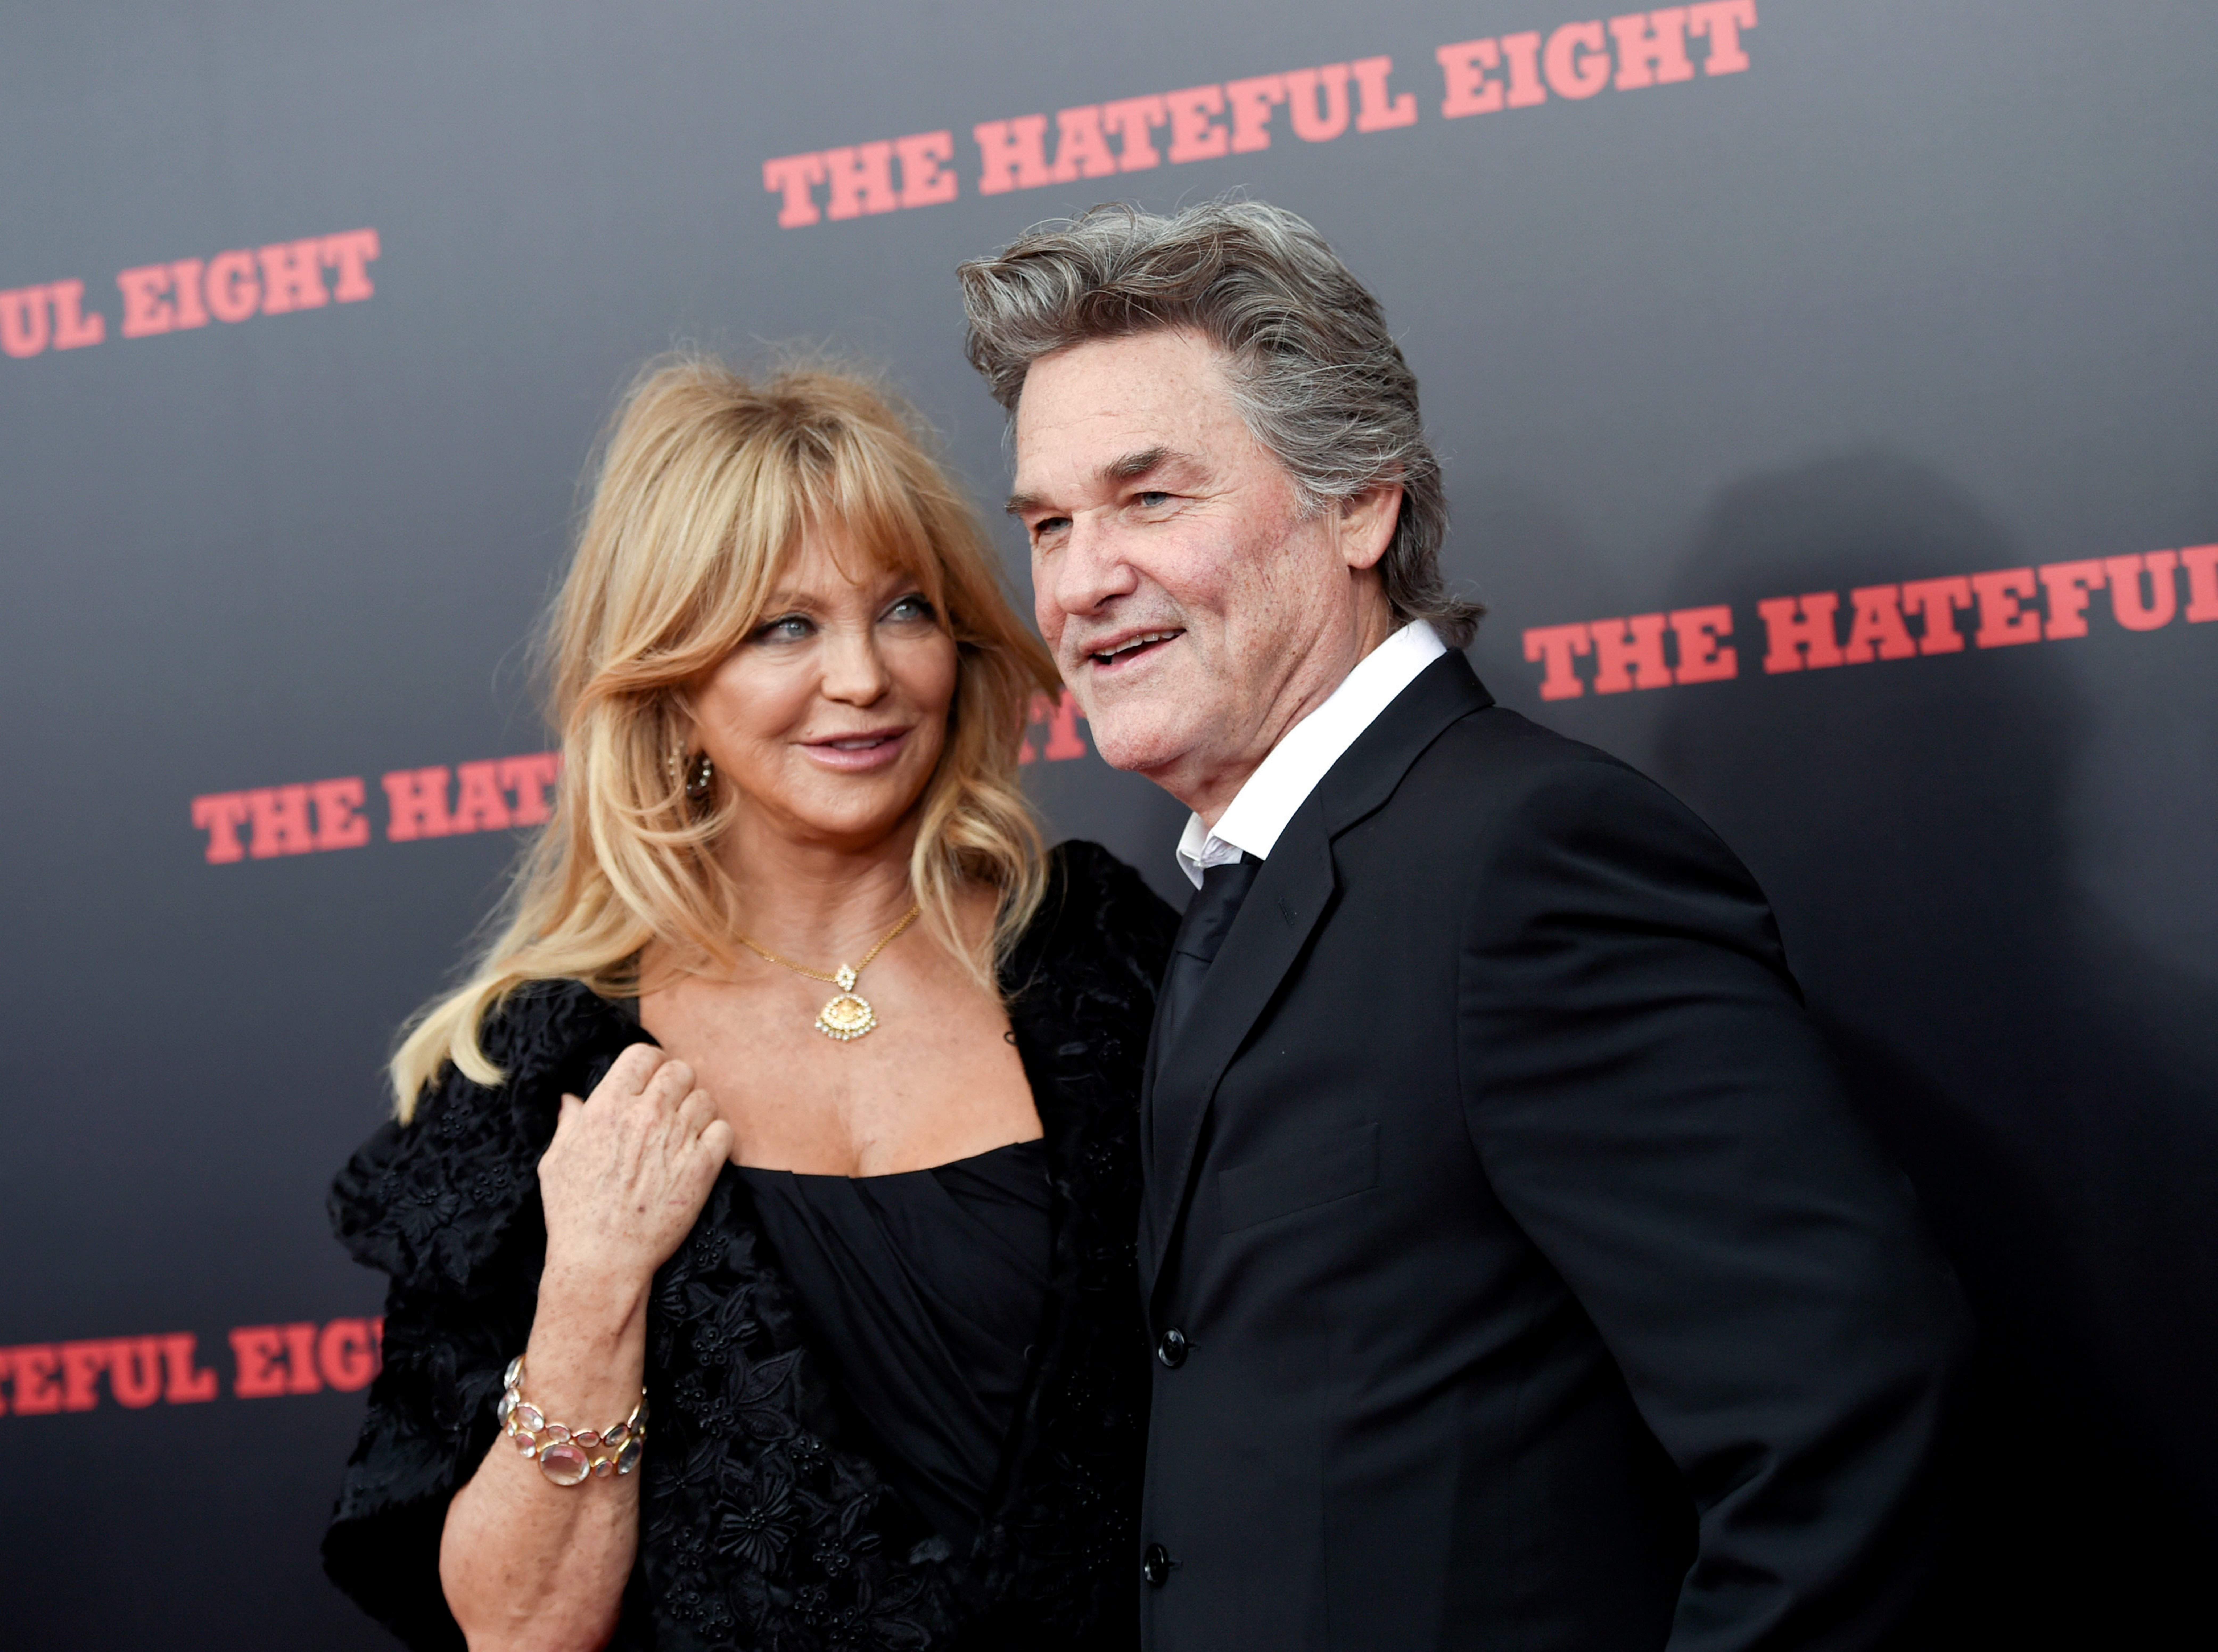 Durango Colorado Goldie Hawn's key to romance with Kurt Russell? No marriage News 60x60 image